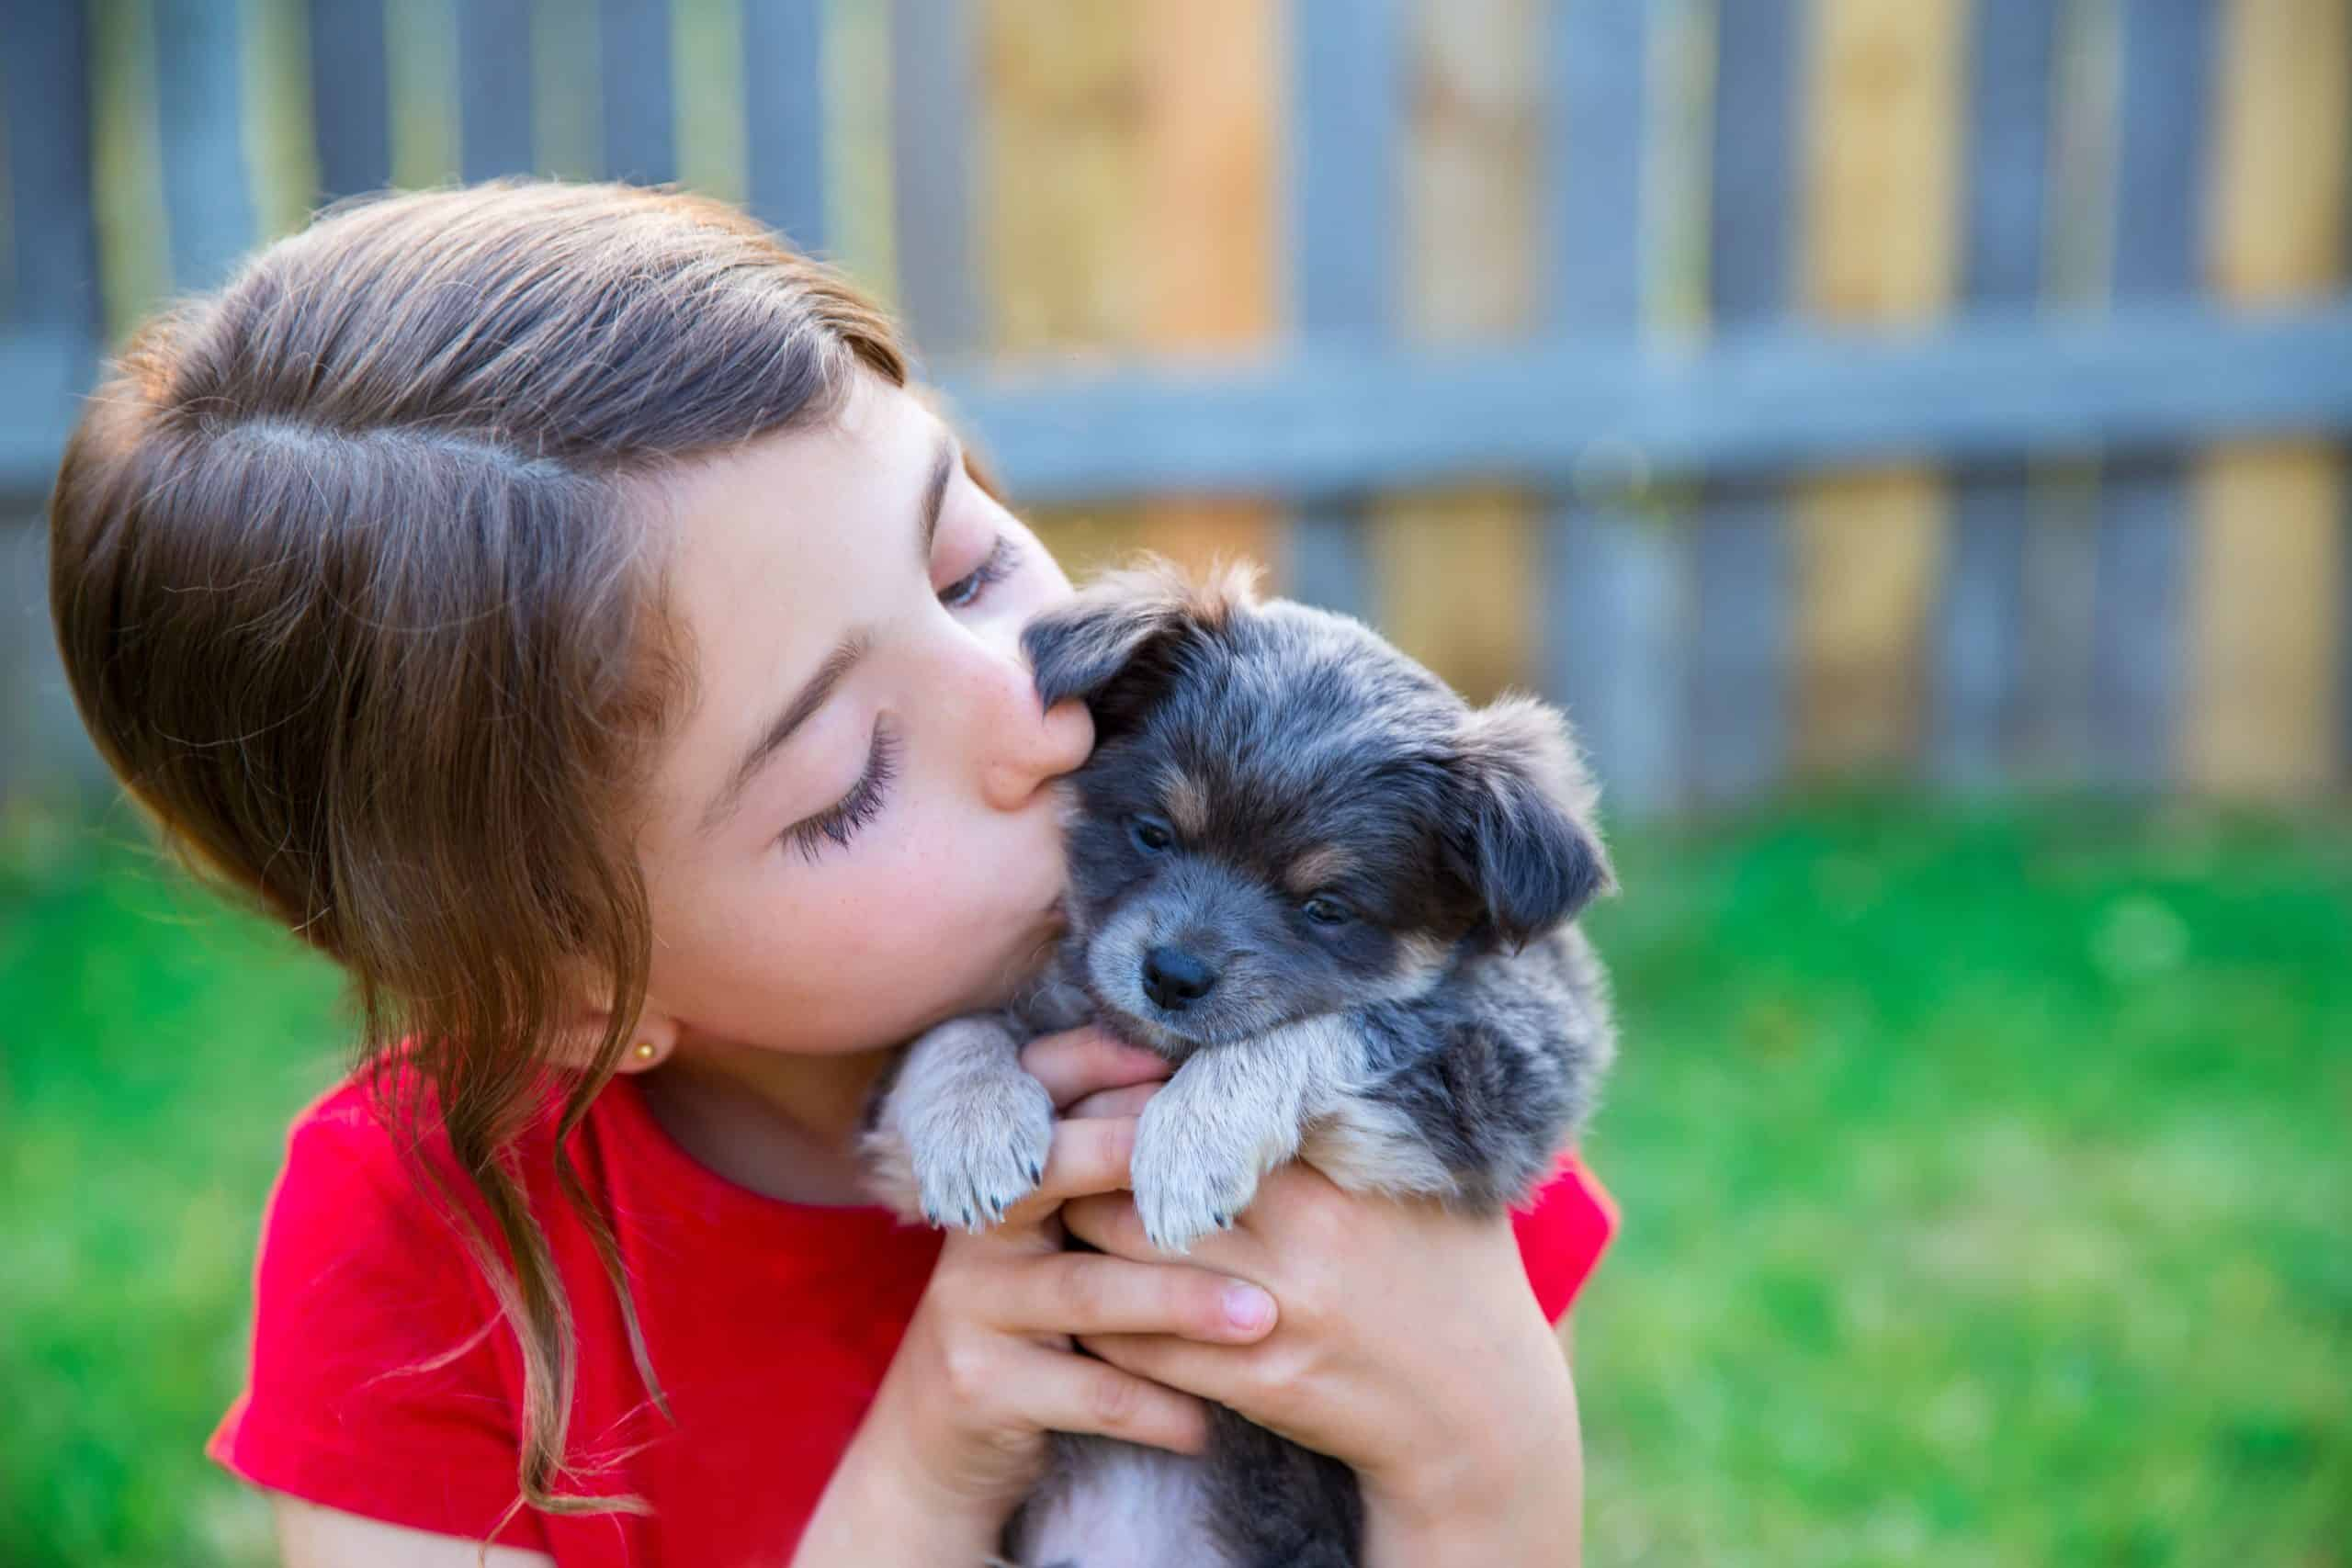 Little girl kisses Schnauzer puppy. Teach children to respect your dog's boundaries and to never interrupt them when they are eating or sleeping.